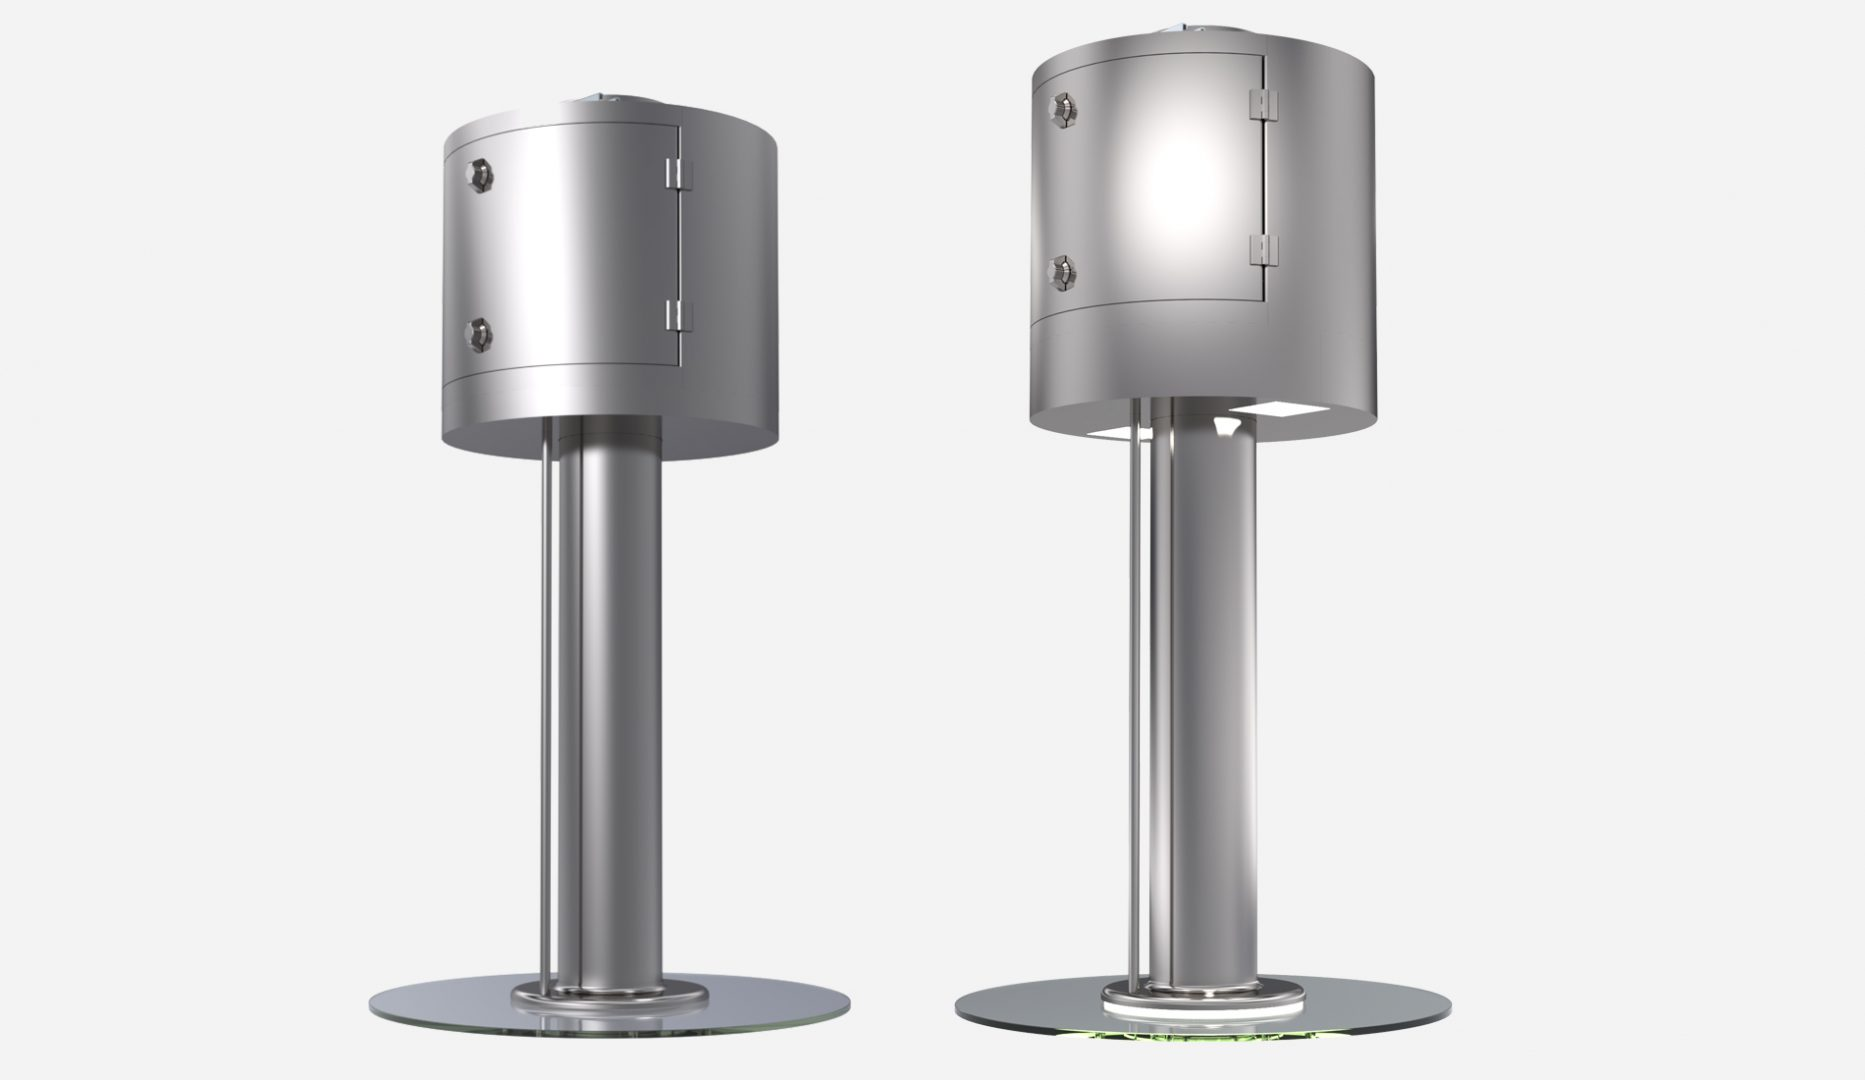 JES-RD round design kitchen hood with Jet Extraction System